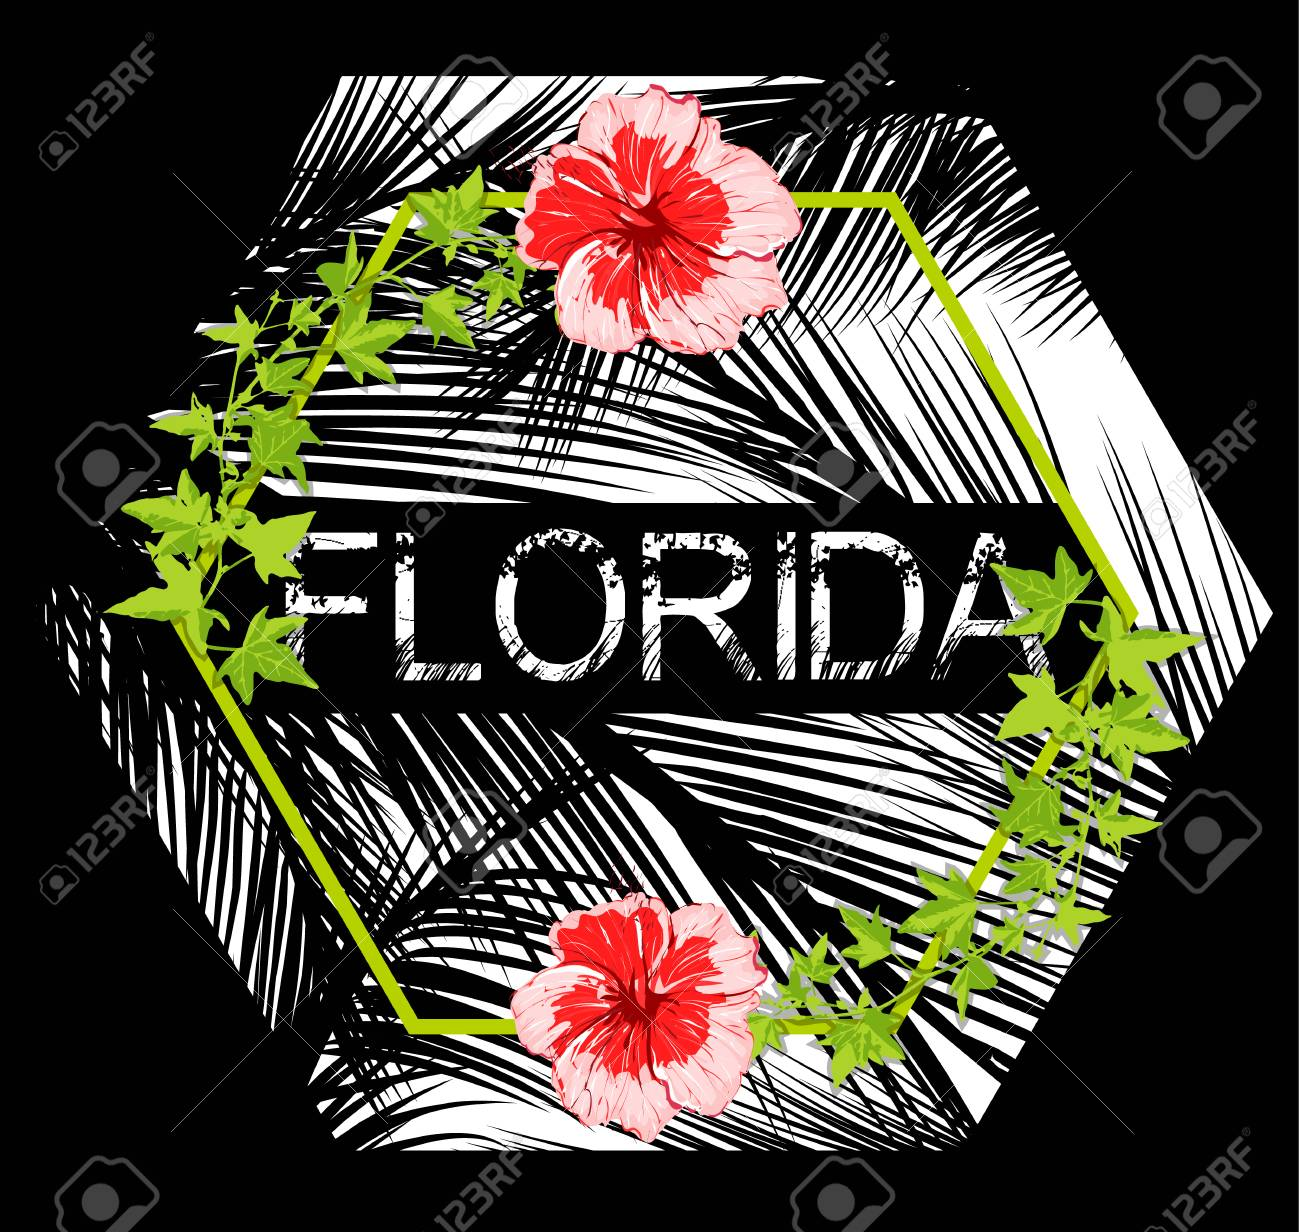 Florida Flowers Poster With Black Background Royalty Free Cliparts